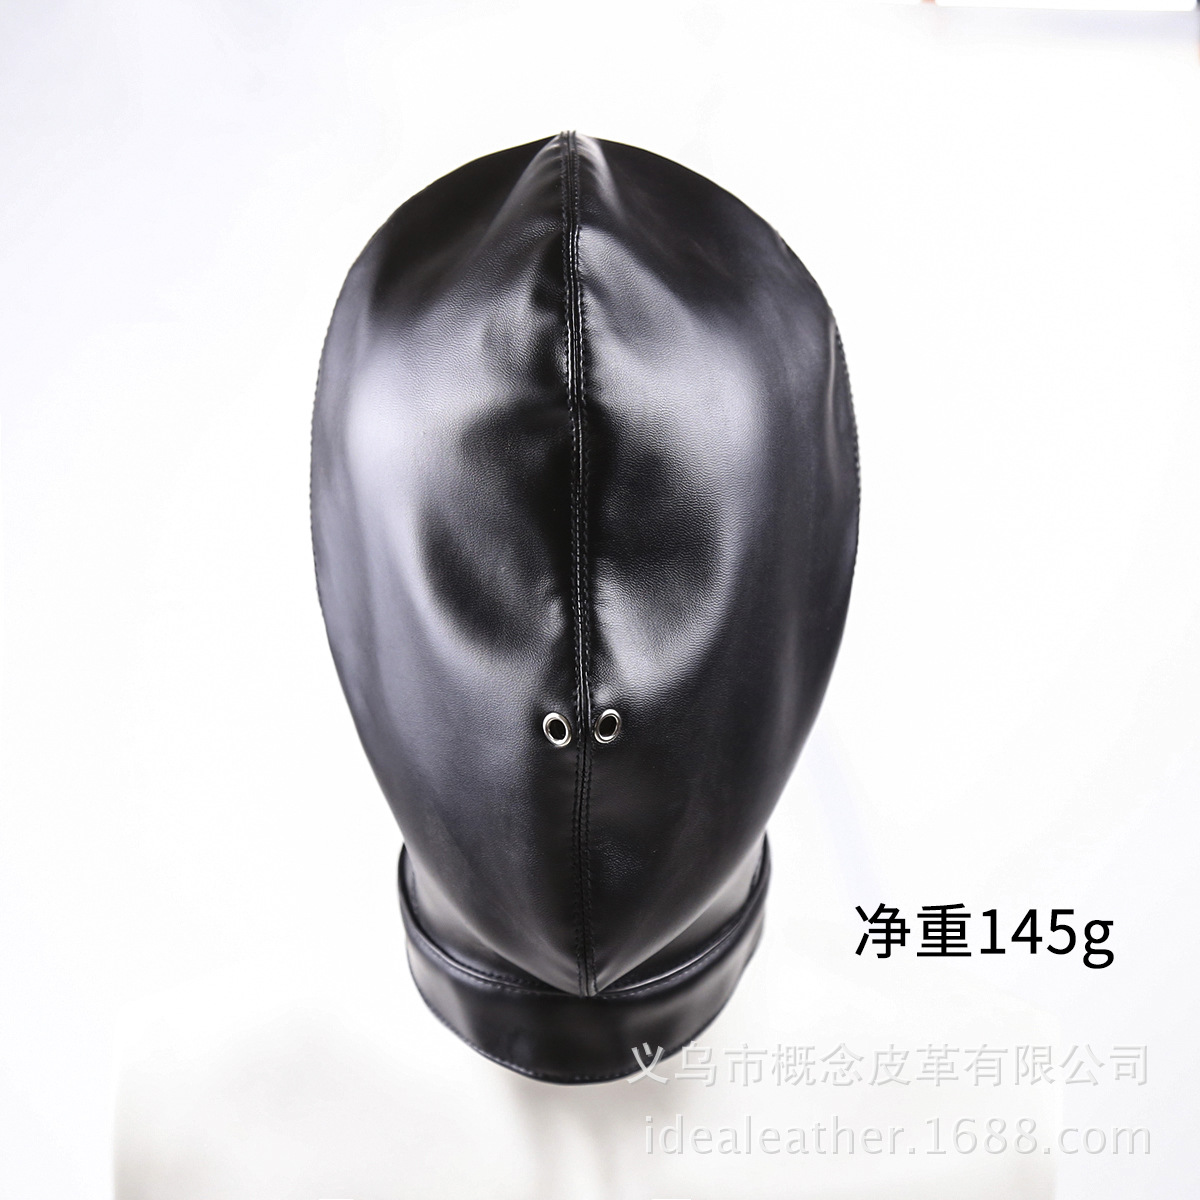 Sex Products Restraint Slave BDSM Bondage Sex Toys High Quality PU Leather Full Hooded Mask Blindfold Open Nostril Heads